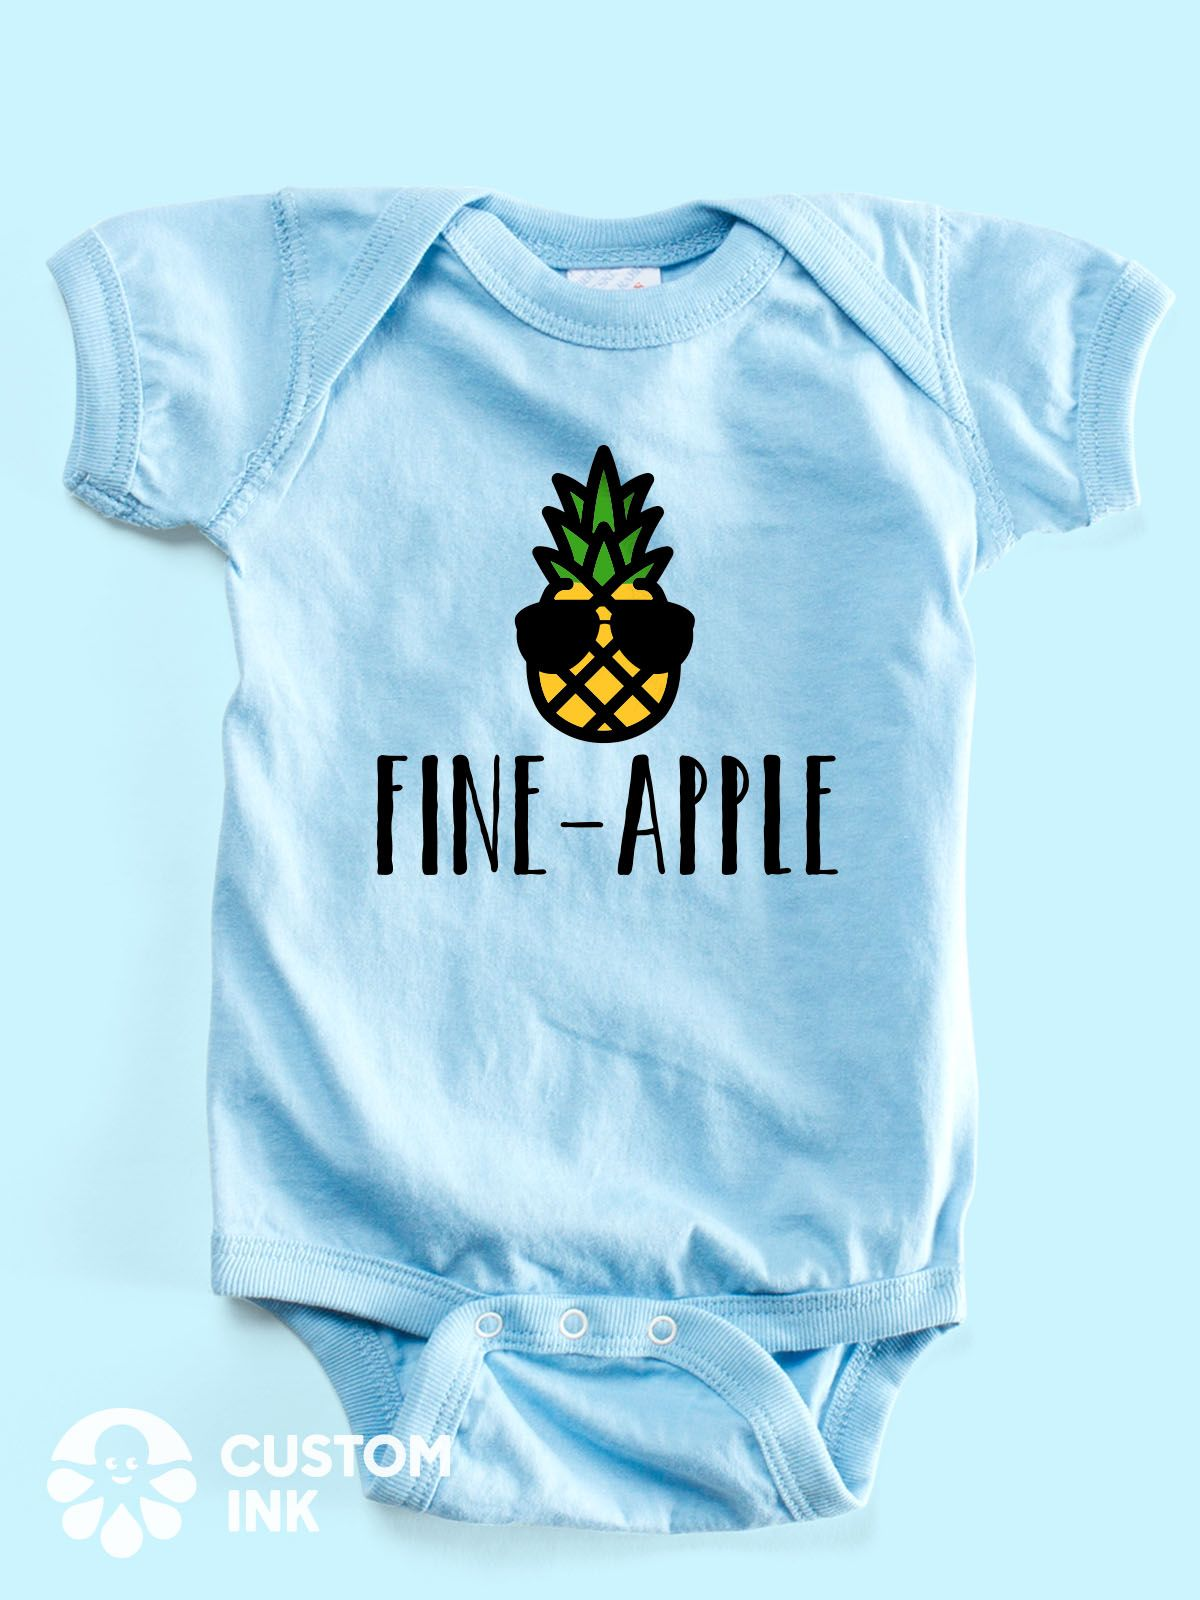 Baby Shower T Shirt Sayings : shower, shirt, sayings, Fine-Apple, Perfect, Funny, Saying, Design, Custom, Onesie,, T-shirt,, Hoodie,, Onesies,, Shirt, Designs,